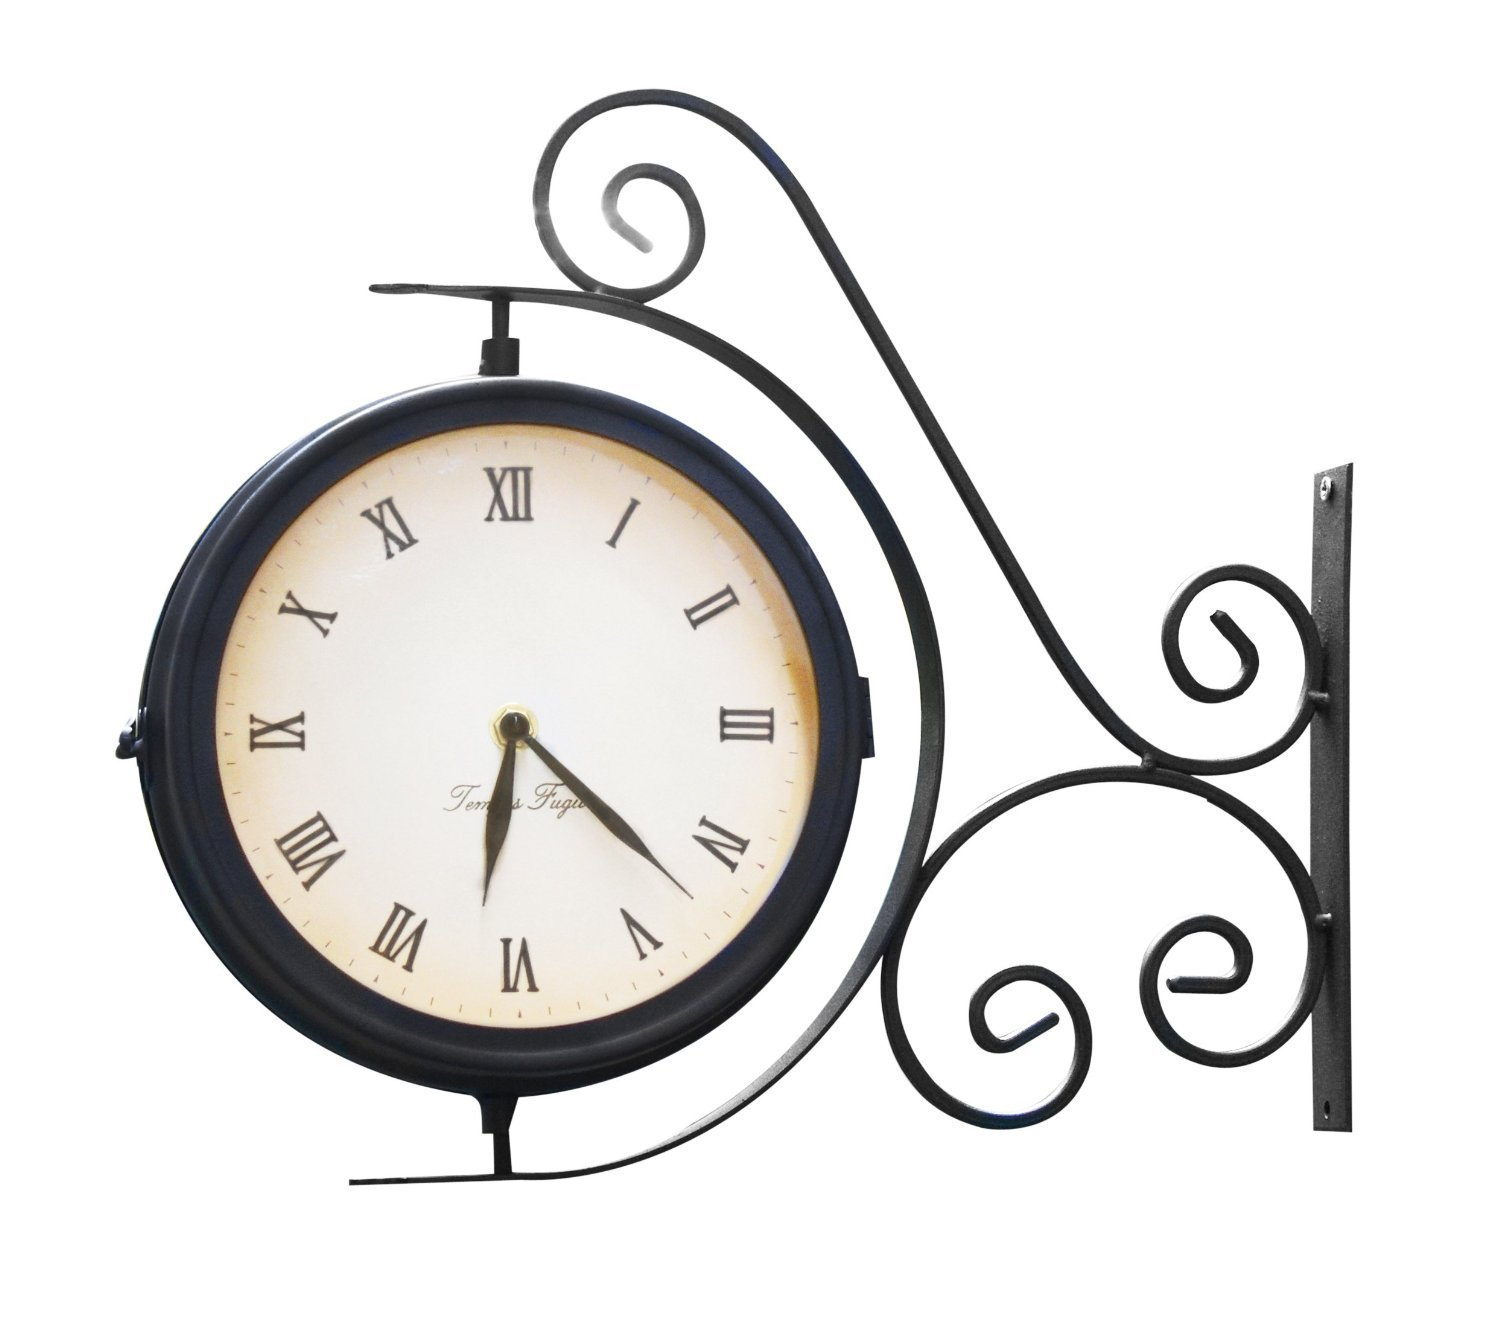 Indoor Outdoor Garden Yard Bracket Clock & Thermometer (13.8ins) by The Outdoor Shop